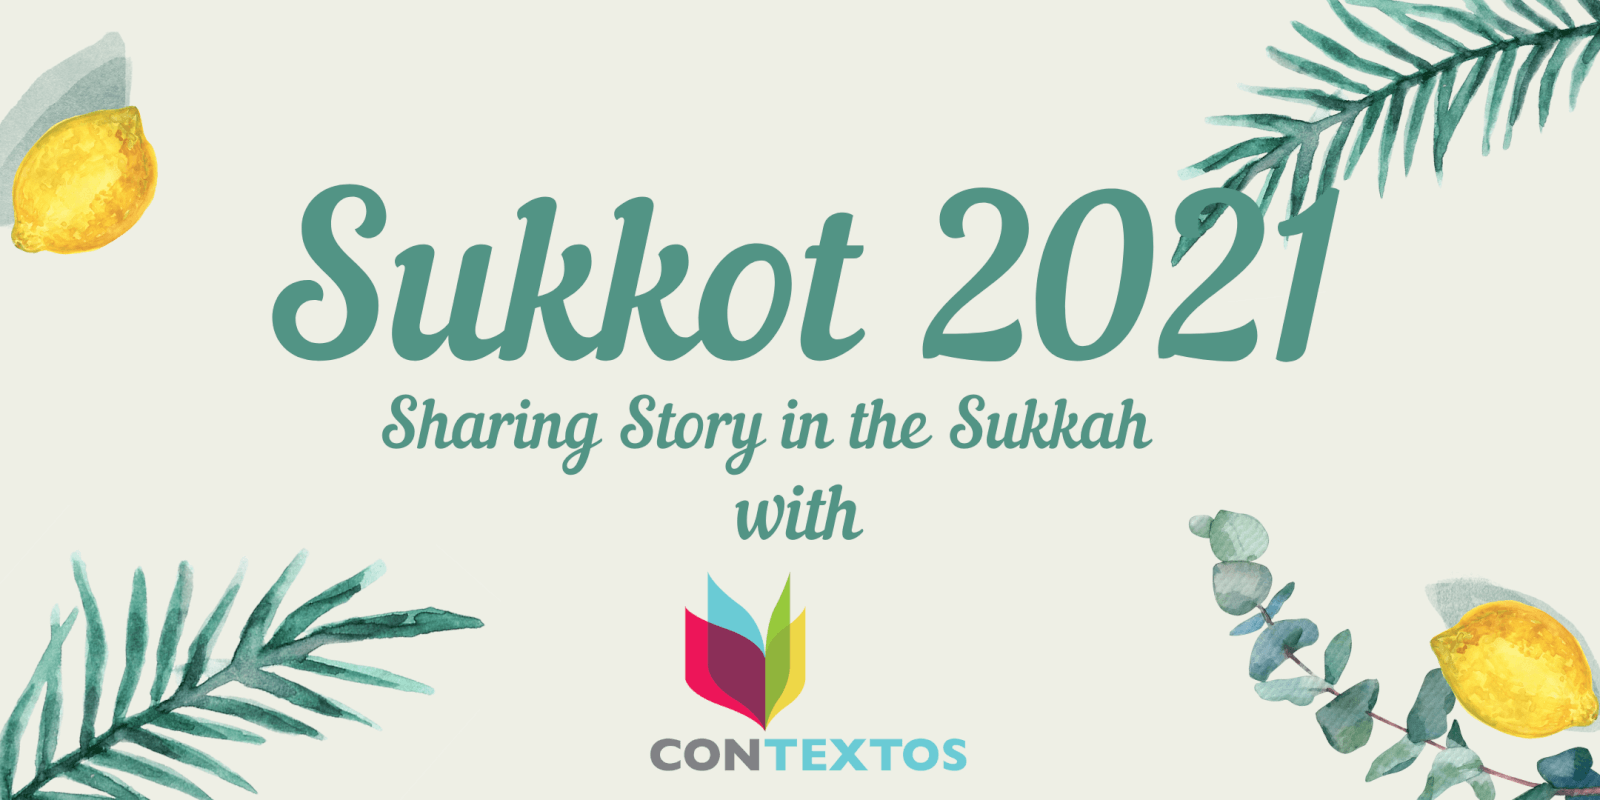 Sharing Story in the Sukkah